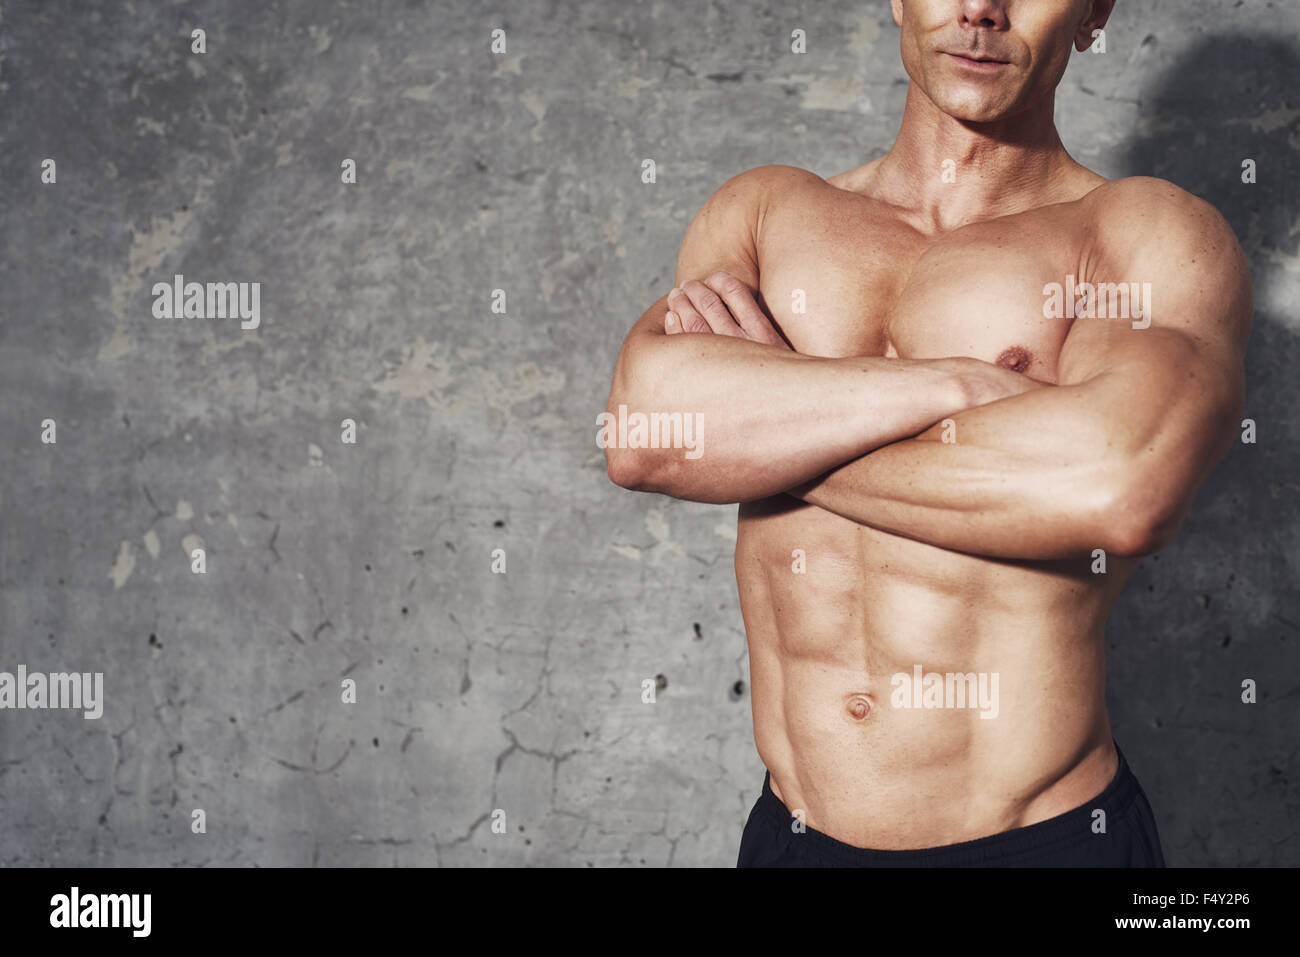 Fitness portrait half body six pack no shirt, fitness concept, room for copyspace, fit and healthy male body with - Stock Image